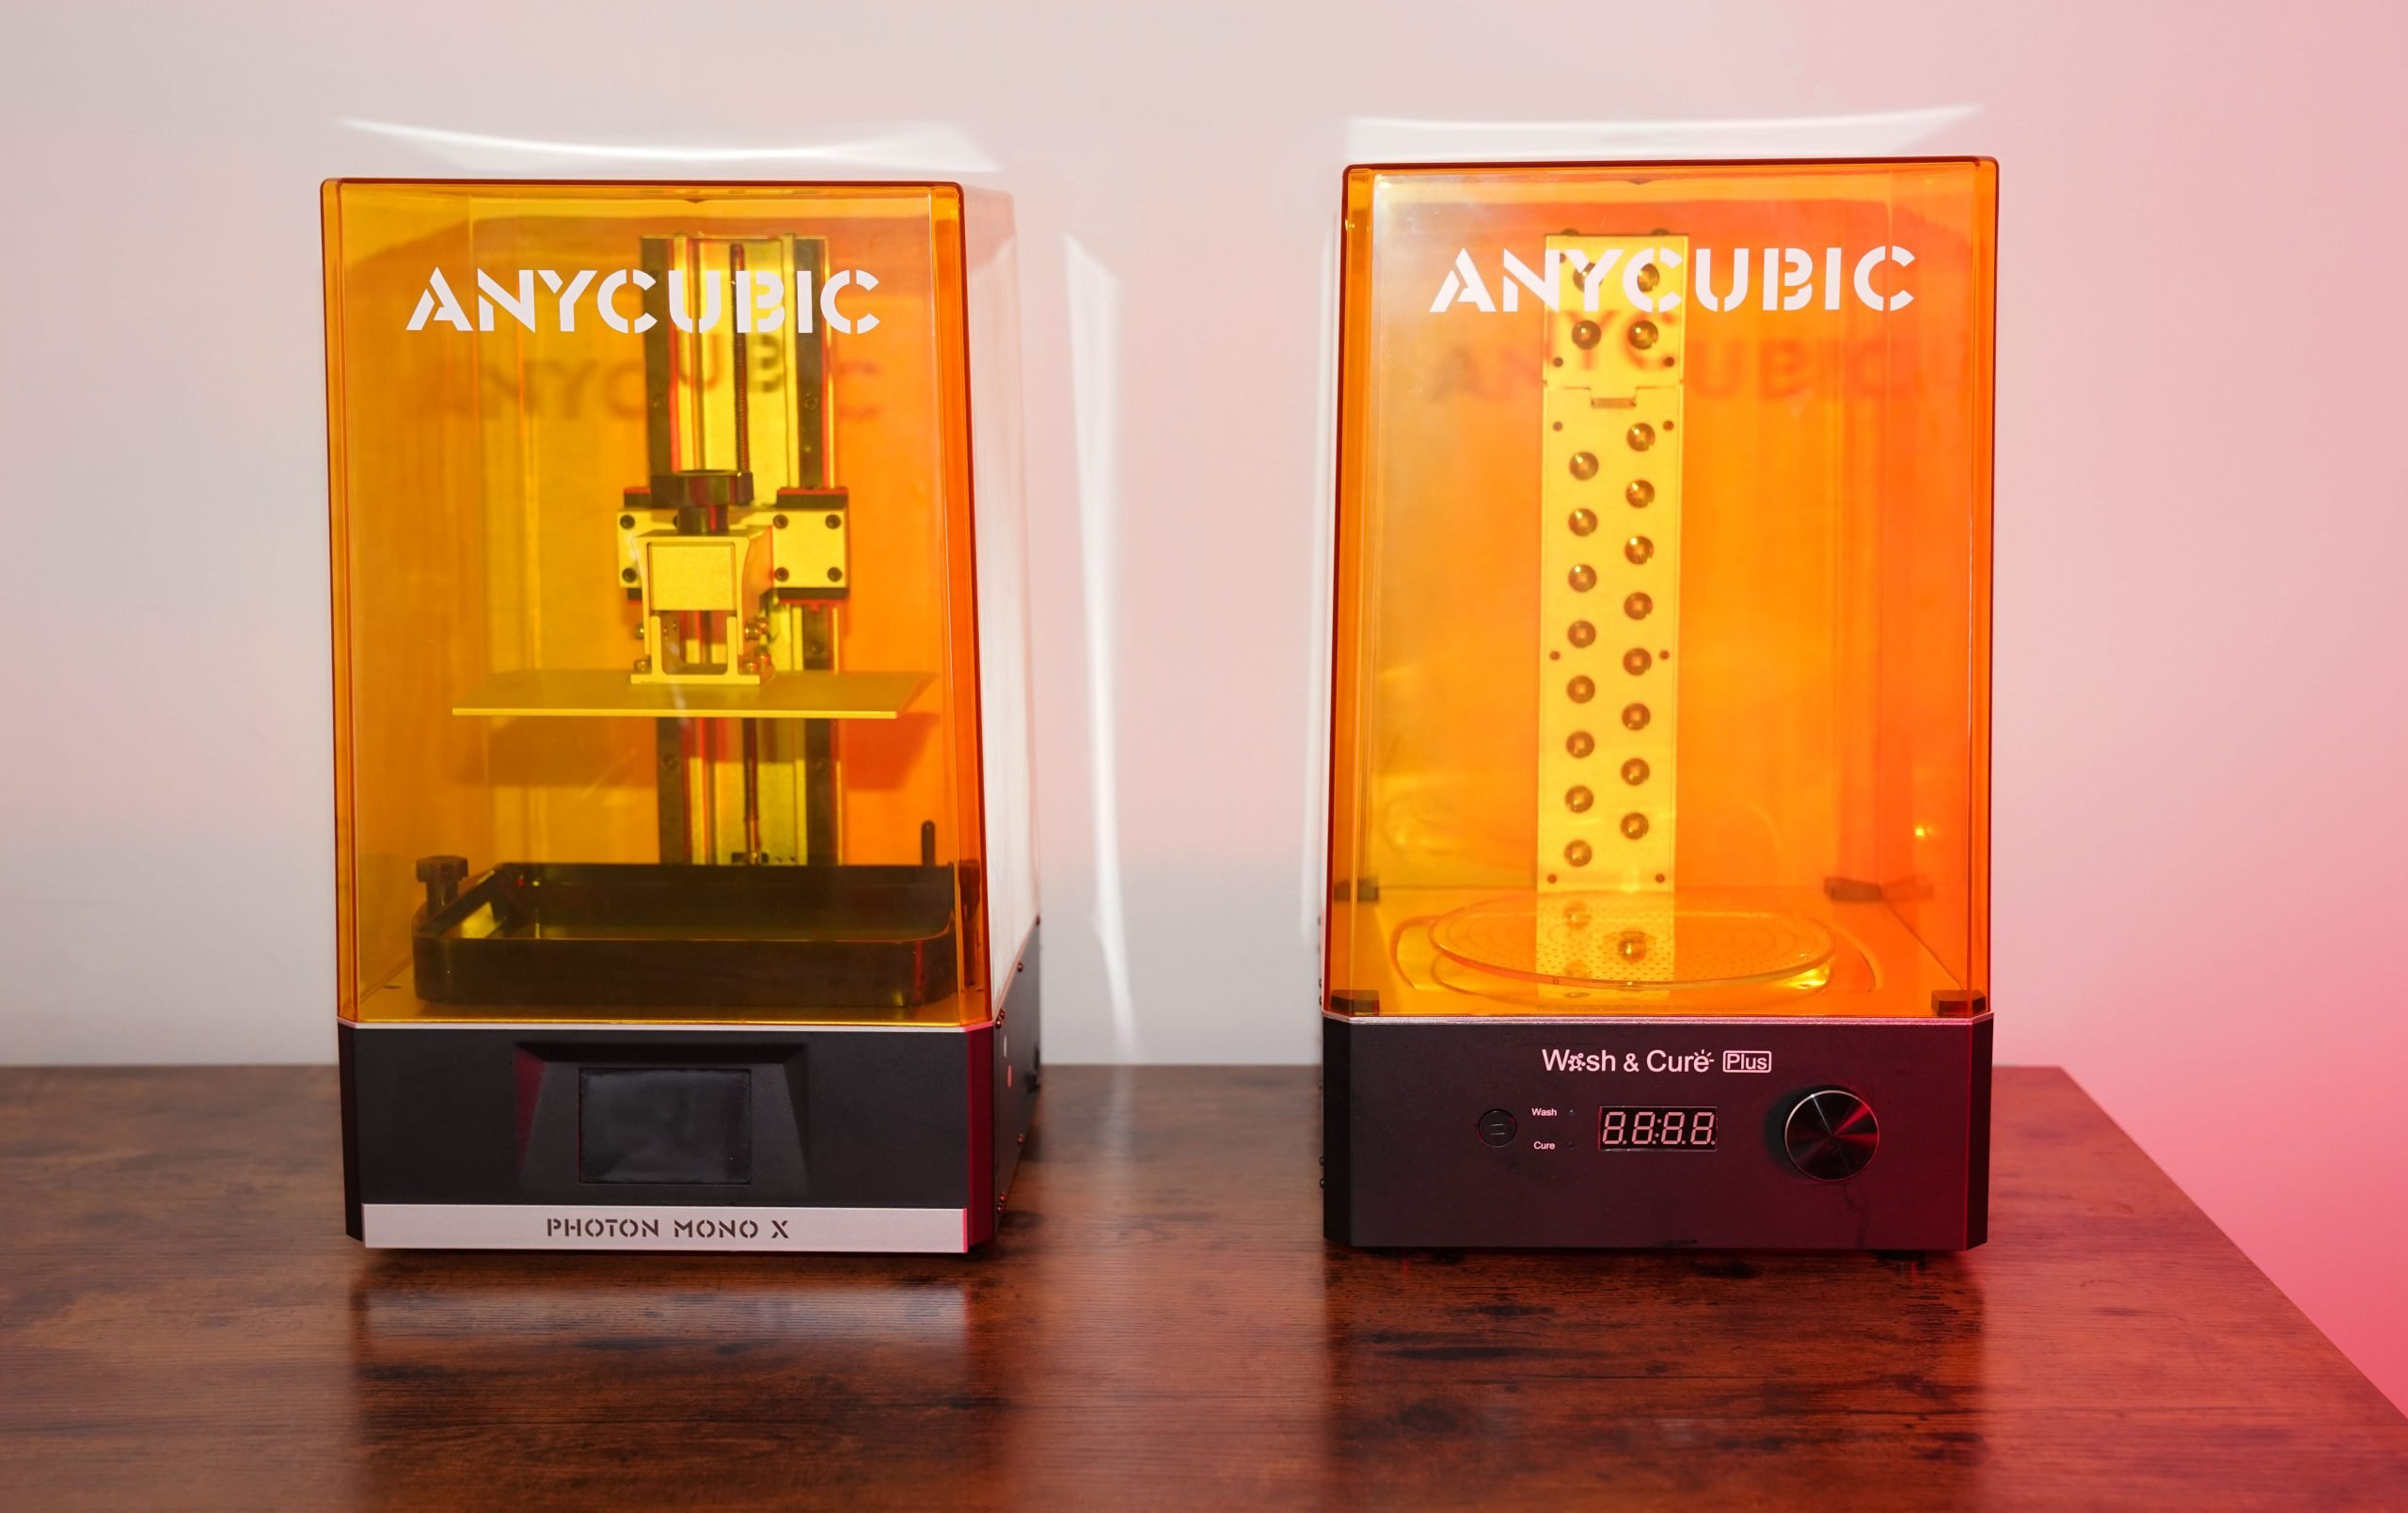 AnyCubic Photon Mono X y Wash & Cure Plus